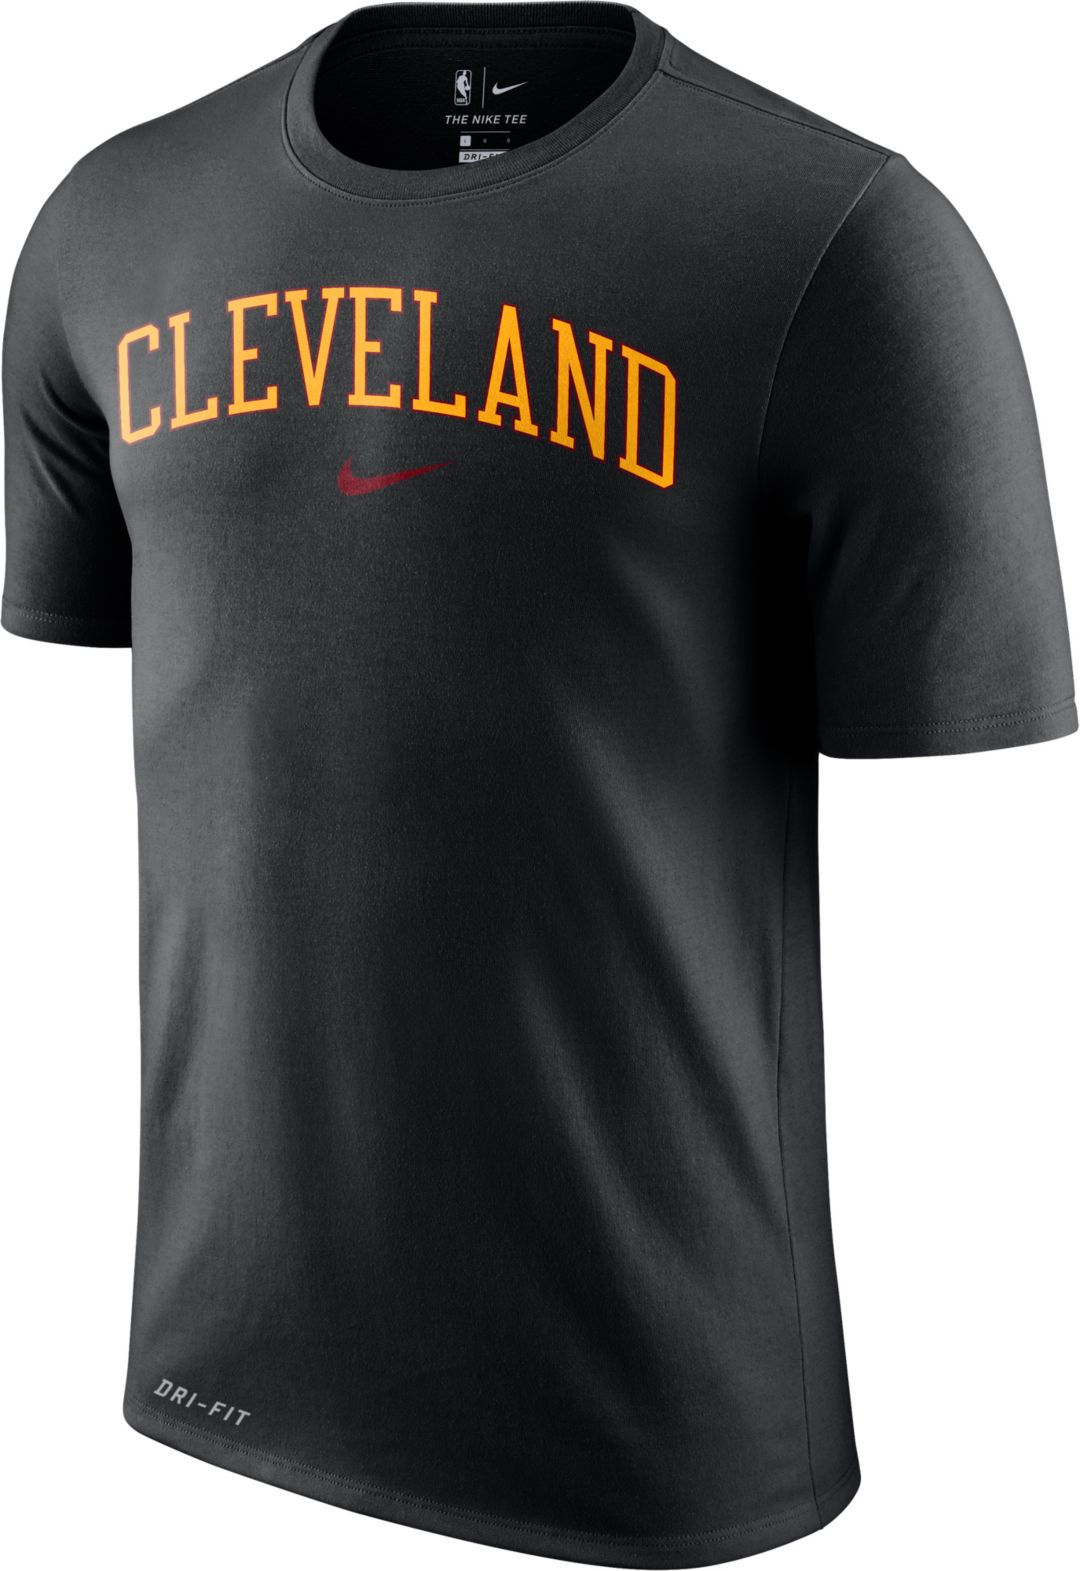 factory authentic ee289 7eacd Nike Men's Cleveland Cavaliers Dri-FIT City T-Shirt